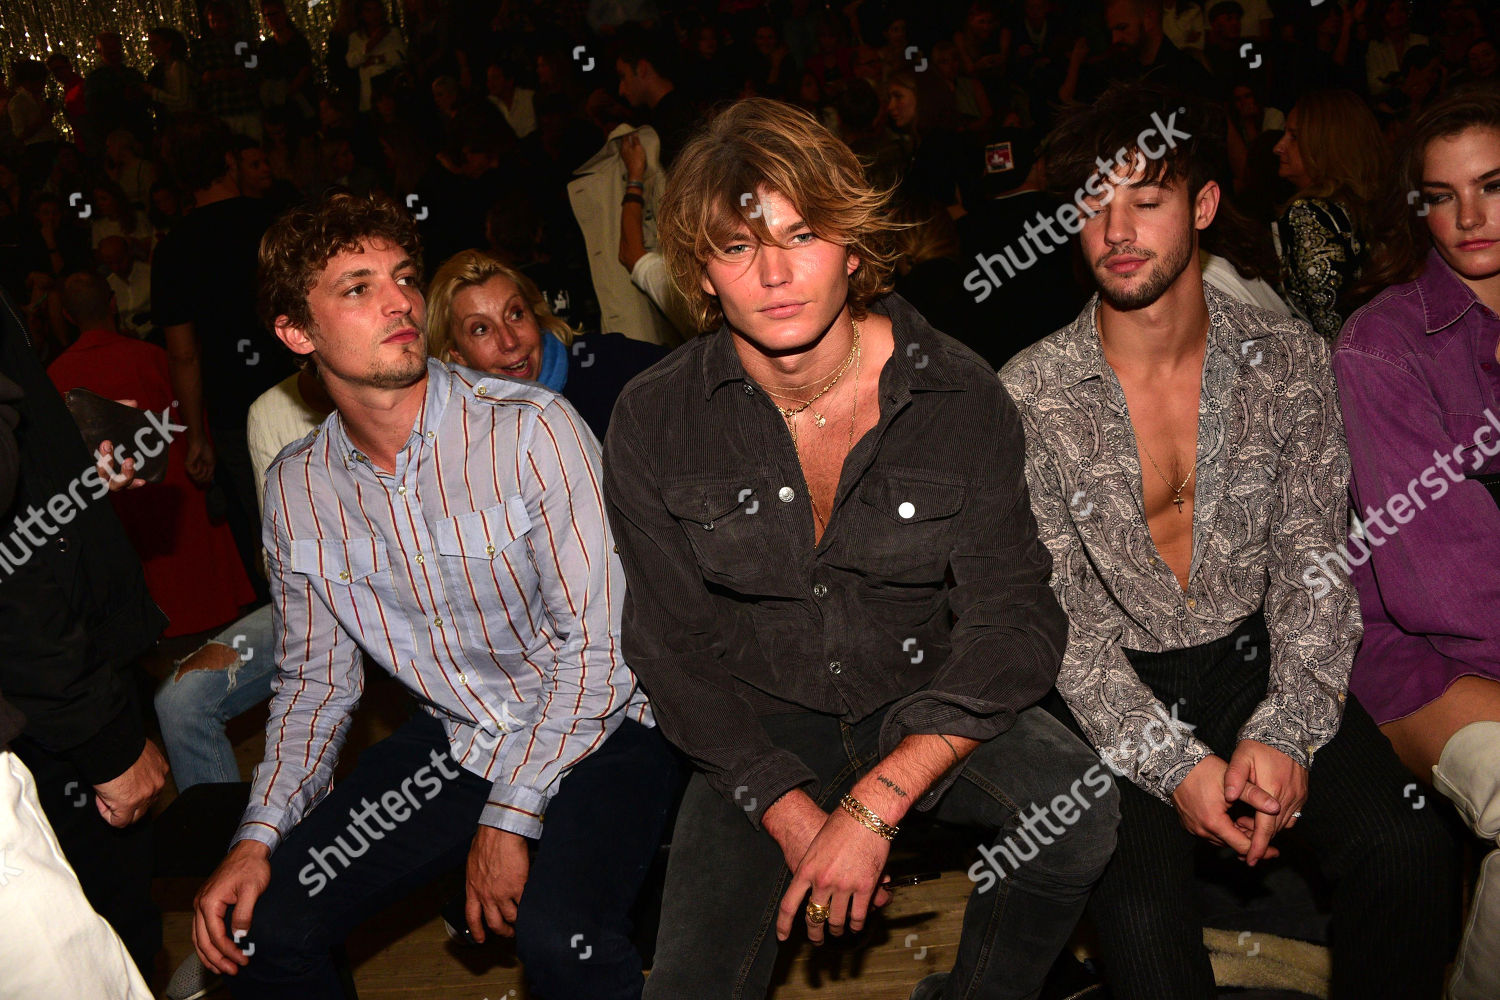 ddafe397 Isabel Marant show, Front Row, Spring Summer 2019, Paris Fashion Week,  France Stock Image by LAURENT BENHAMOU for editorial use, Sep 27, 2018